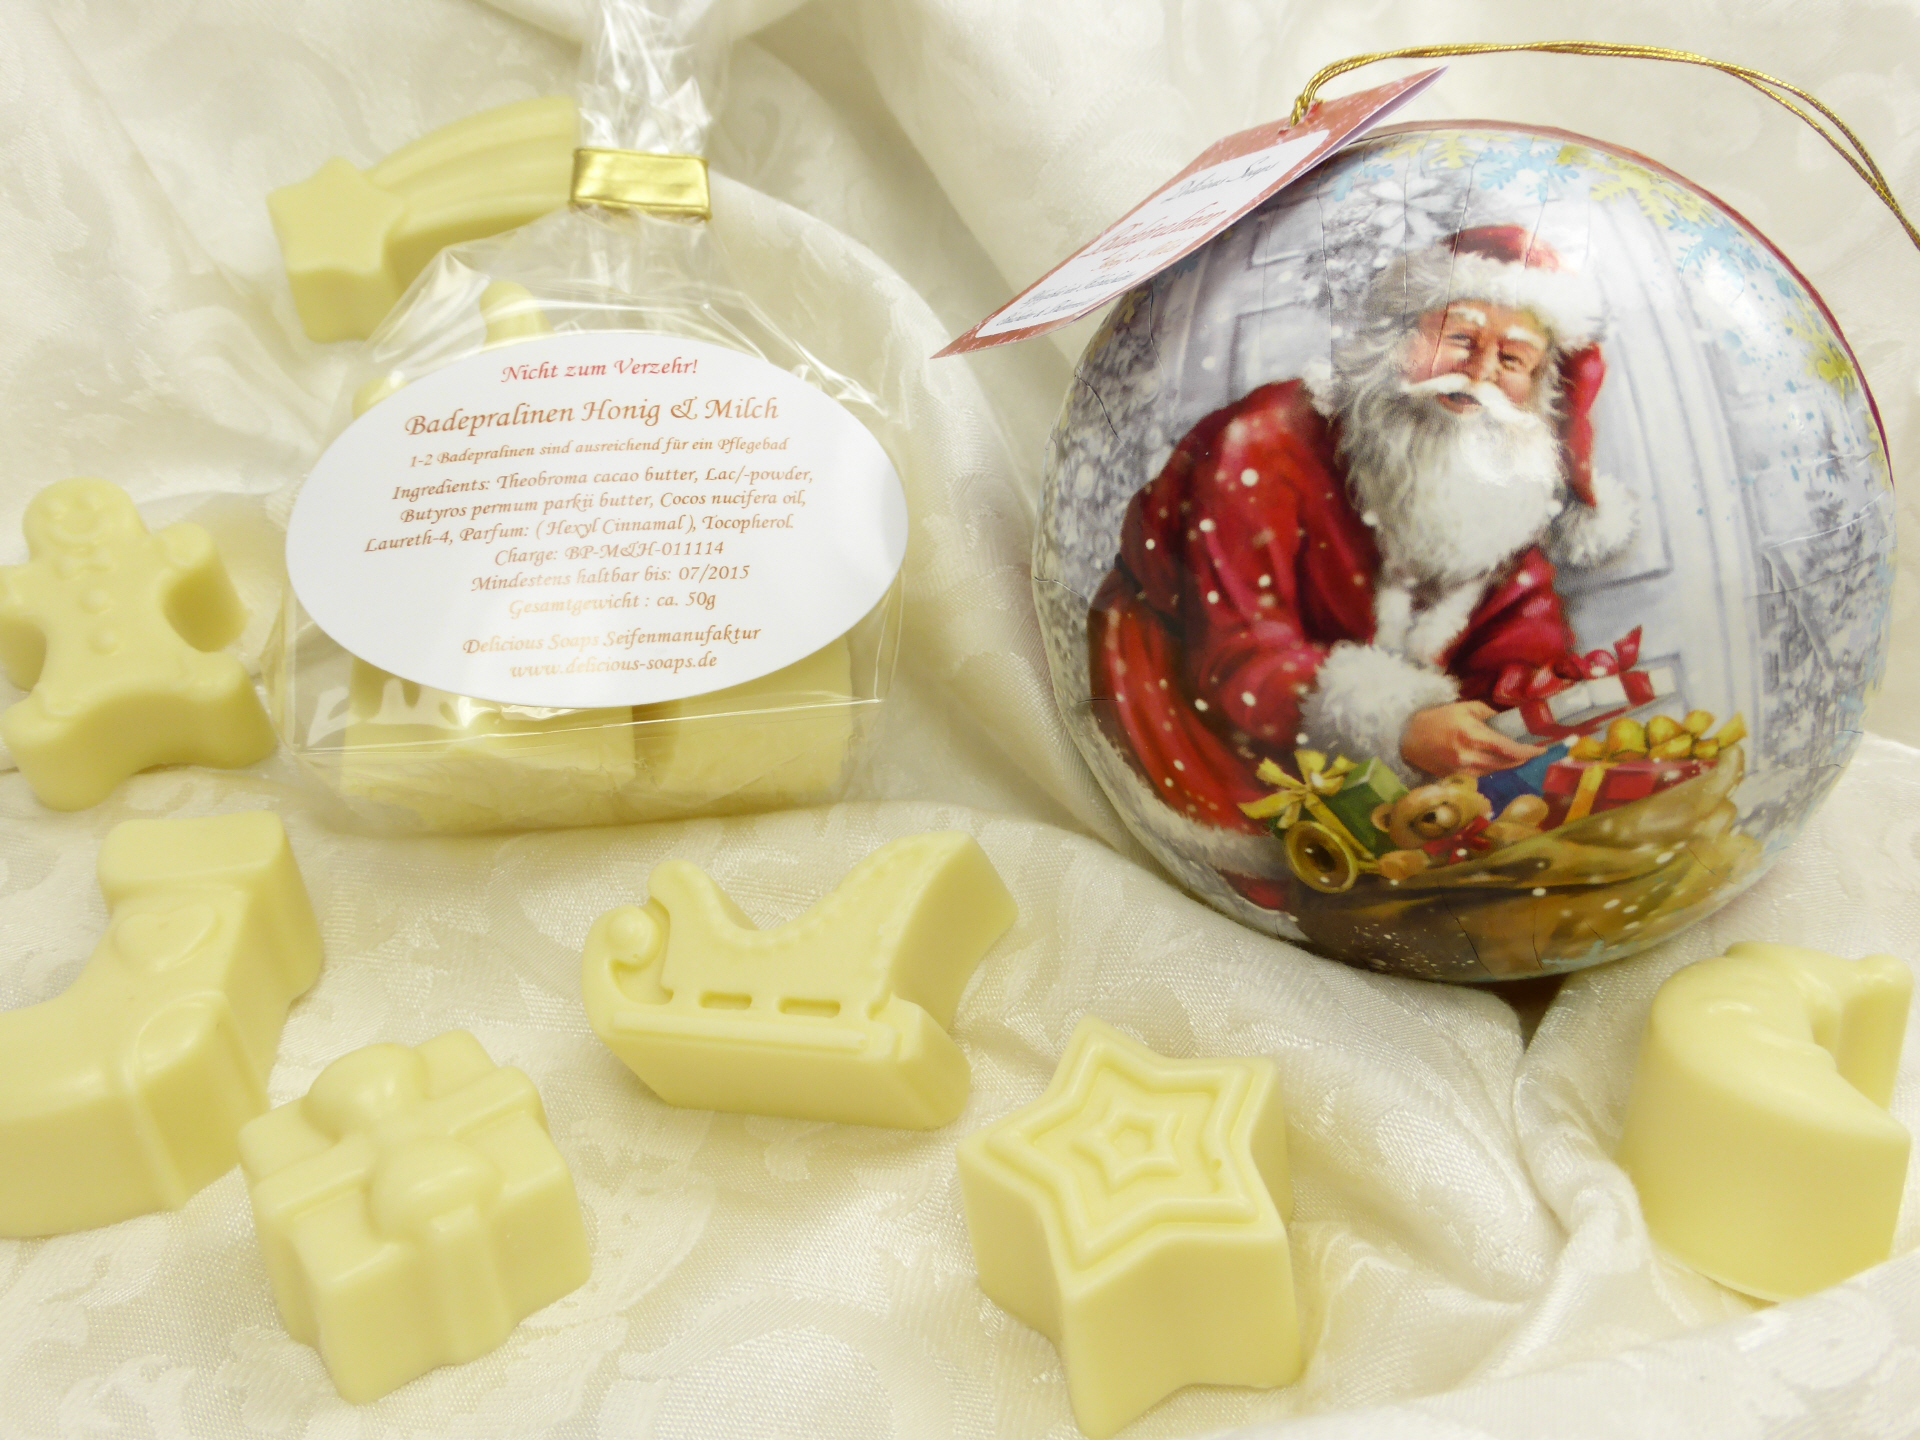 weihnachtskugel badepralinen honig milch delicious soaps badeconfiserie. Black Bedroom Furniture Sets. Home Design Ideas